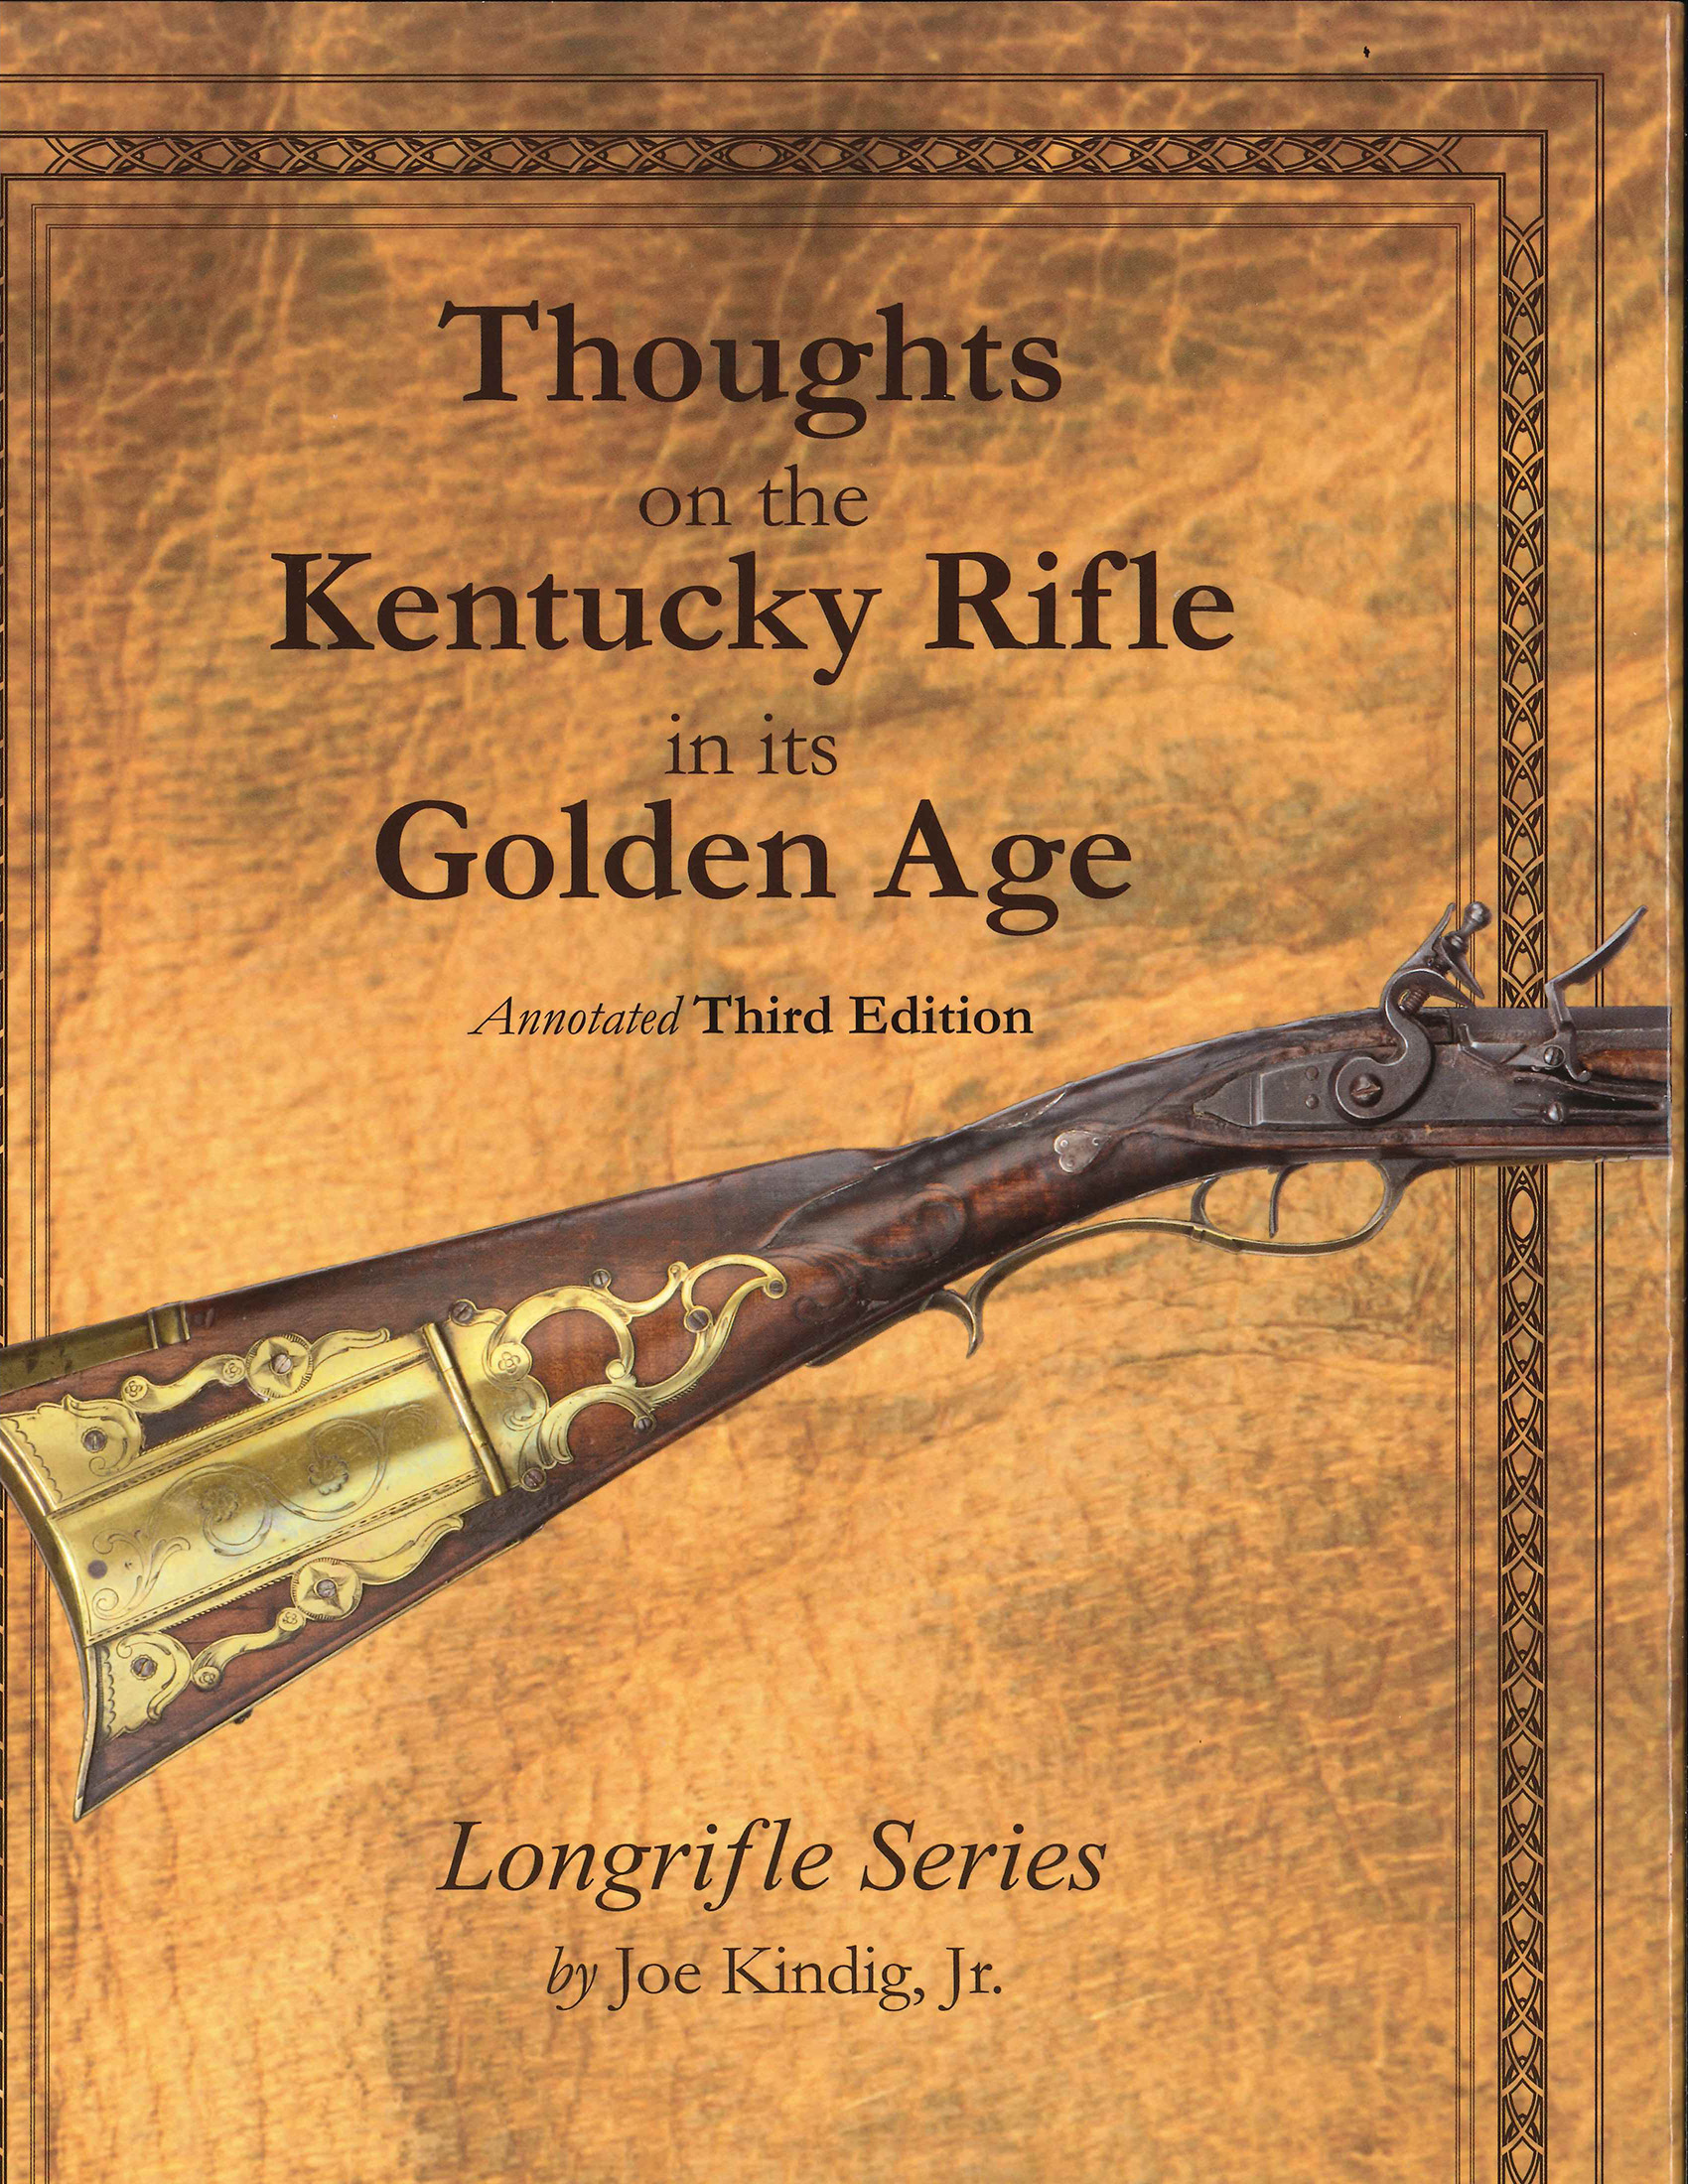 muzzleloading rifles thesis Muzzleloaders - discussion, questions, and comments on muzzleloading firearms.